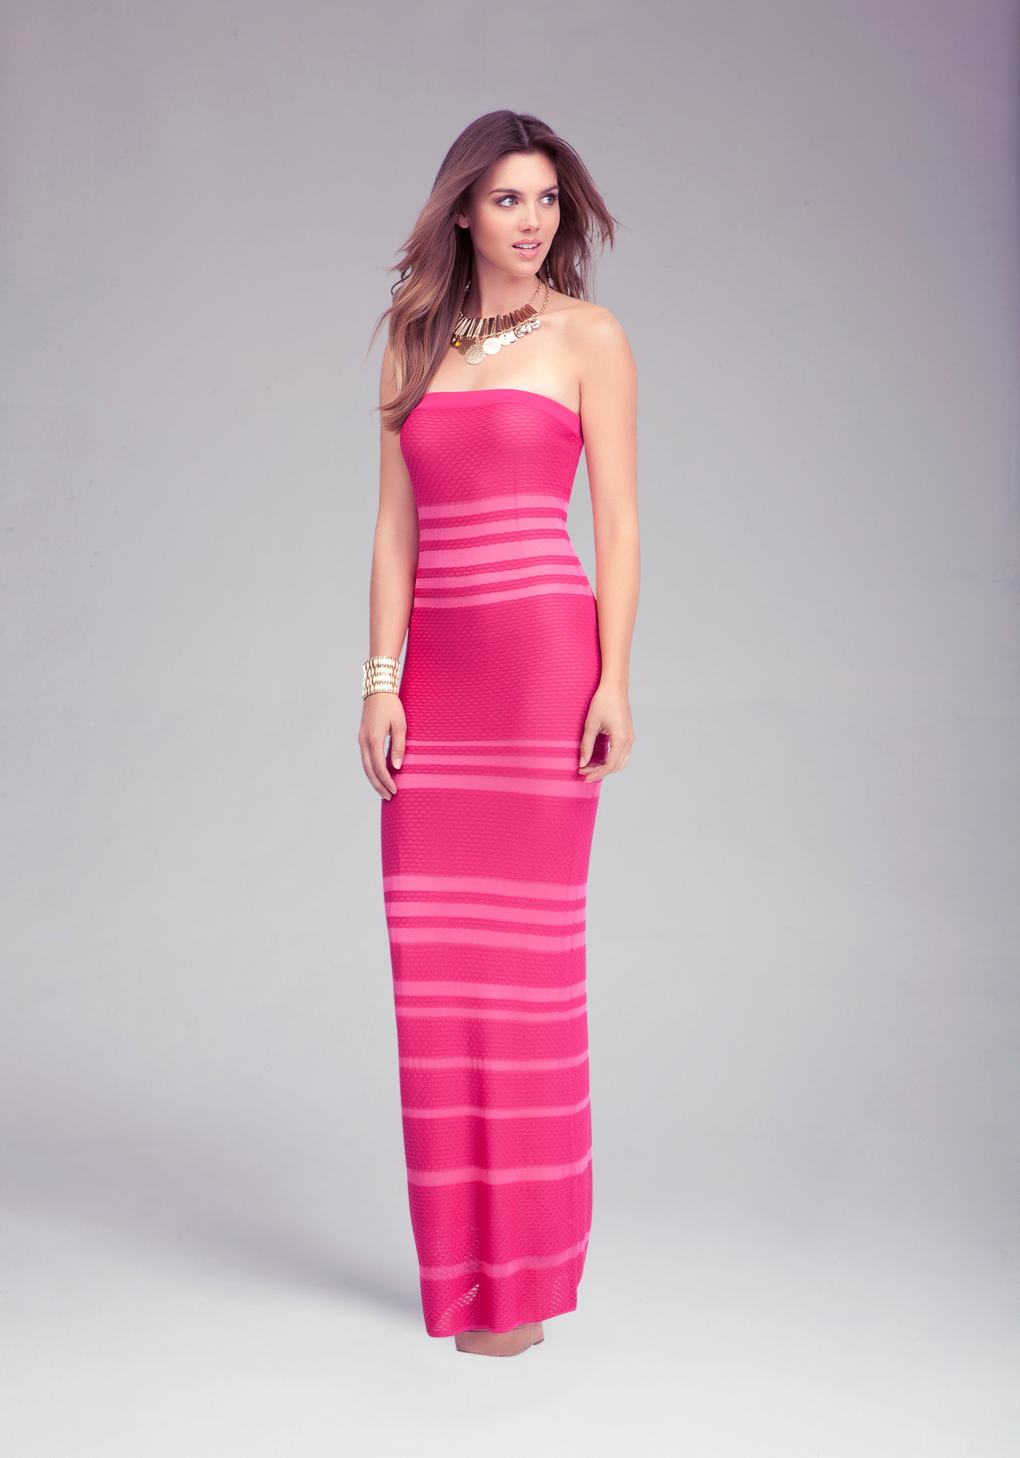 Lyst Bebe Sheer Opaque Strapless Maxi Dress In Pink